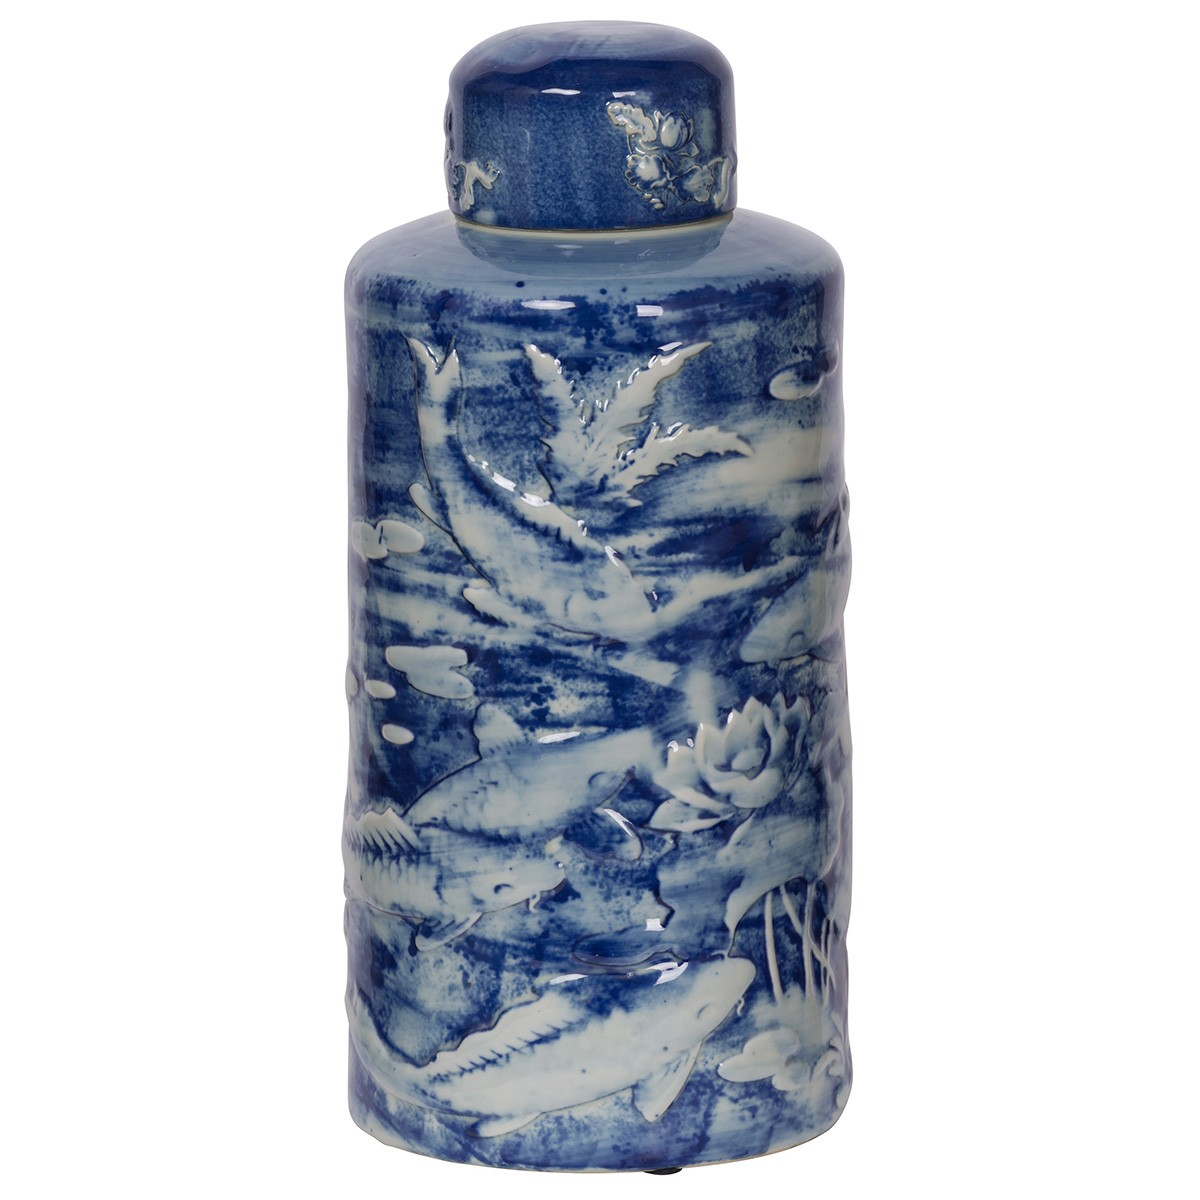 Oriental Charm Ceramic Lidded Jar, Carp Pond